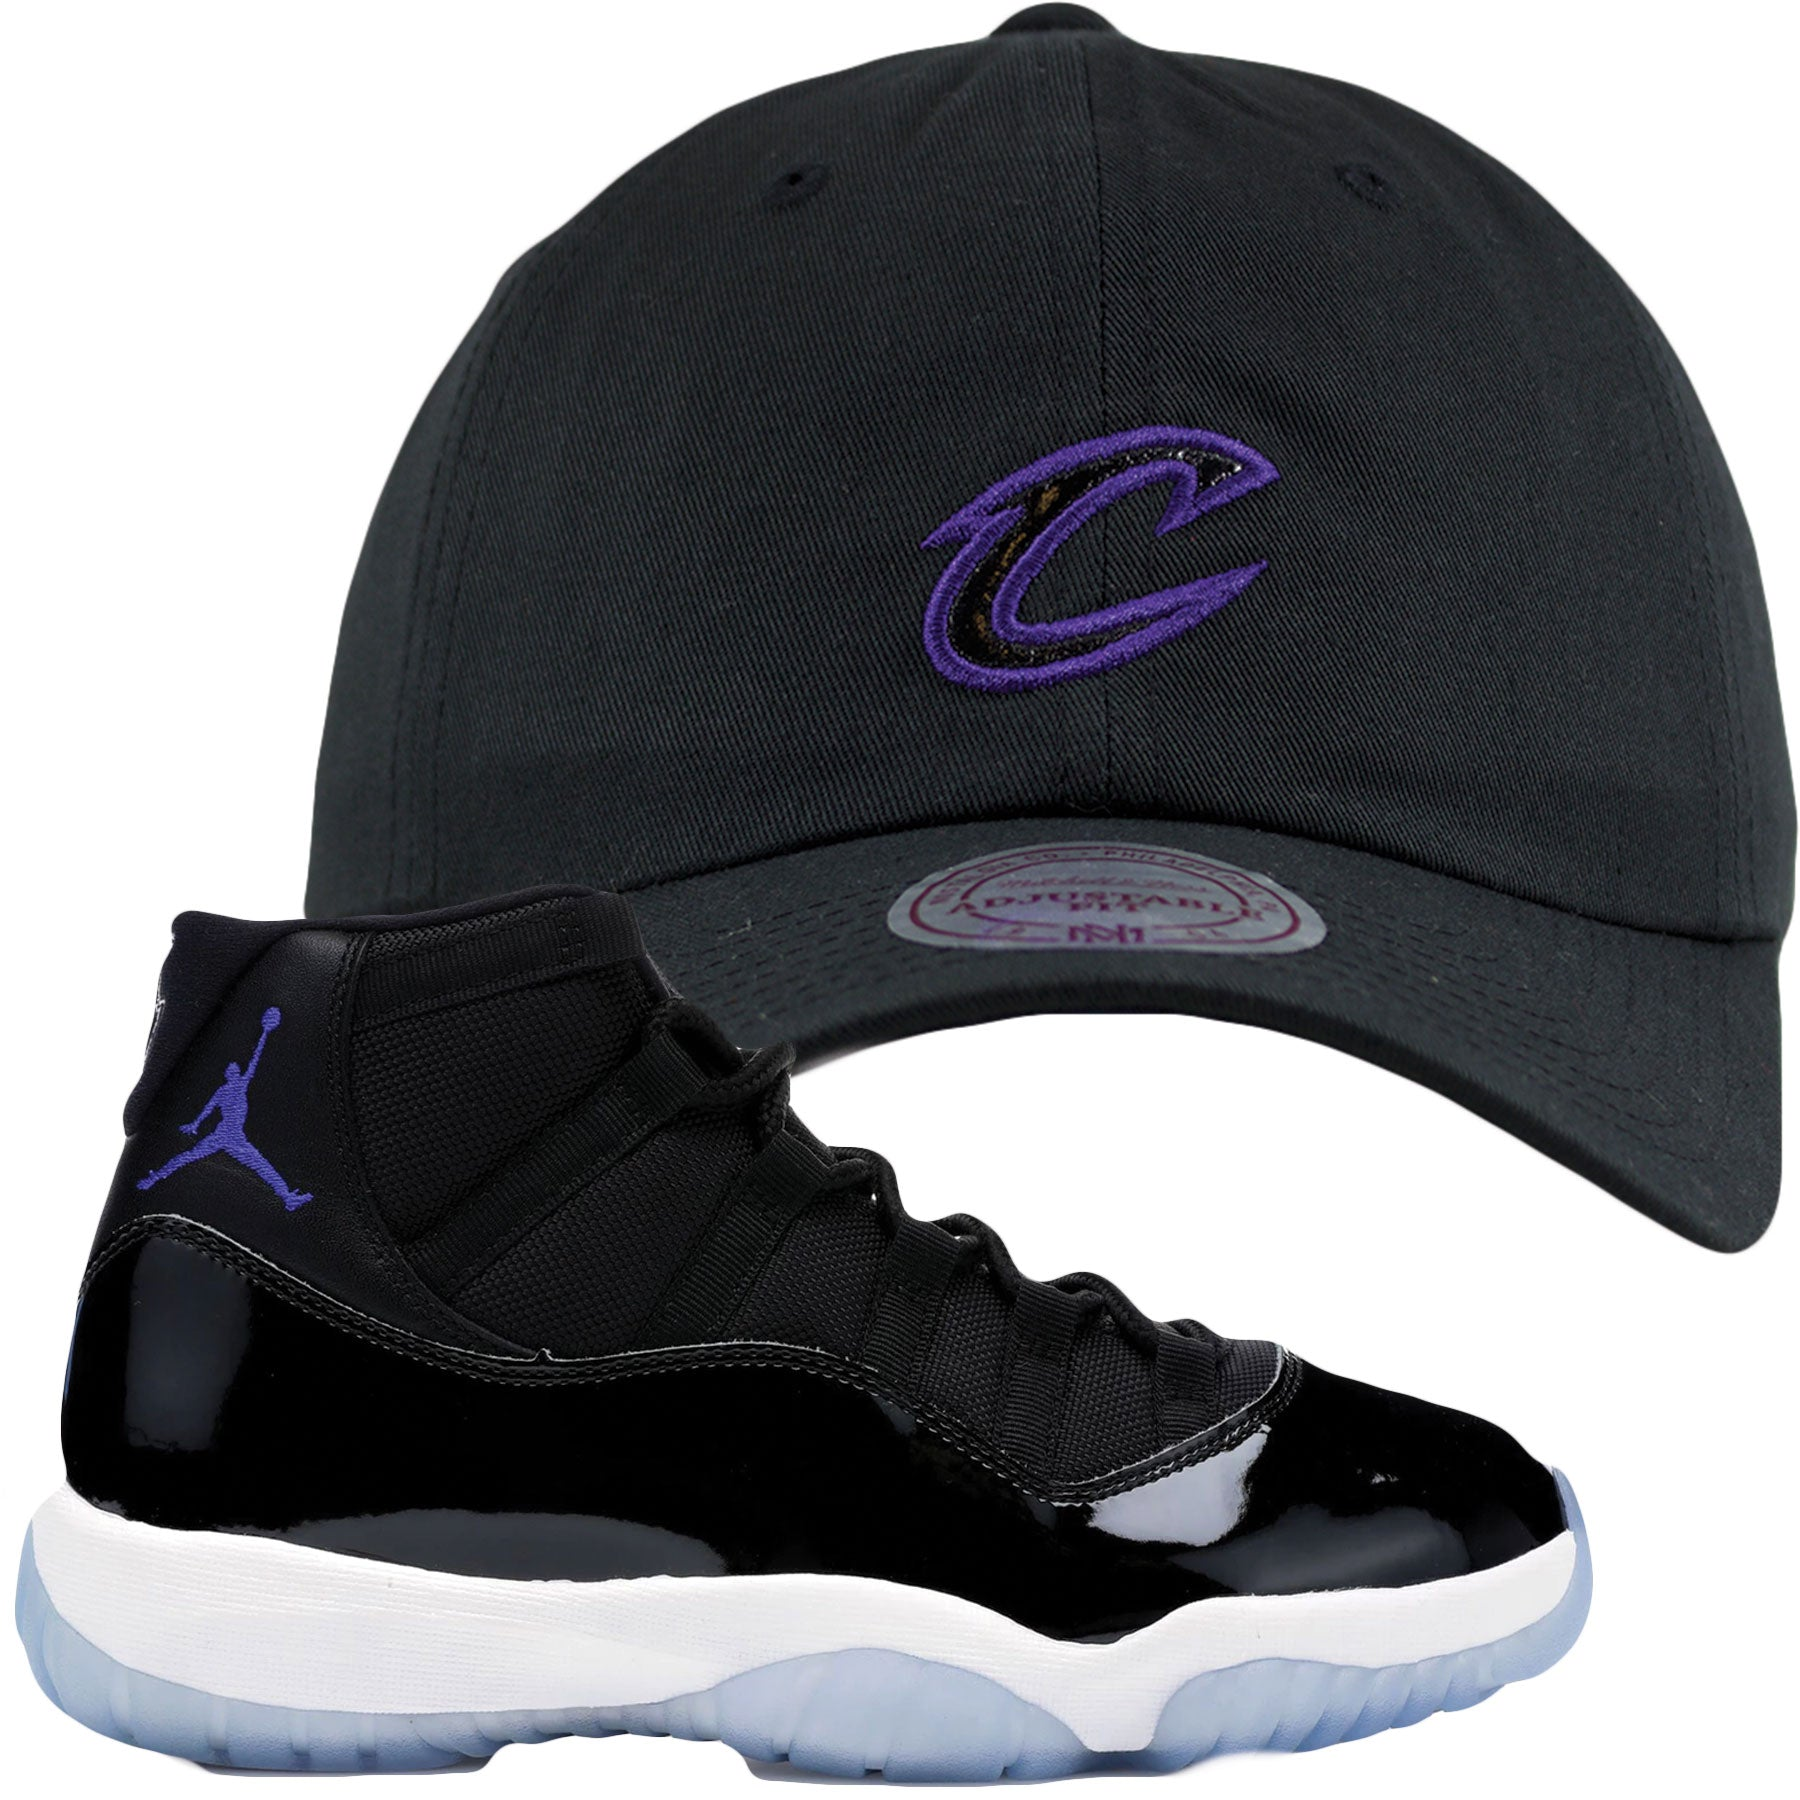 f7aff90c946 Jordan 11 Space Jams Sneaker Matching Cleveland Cavaliers Dad Hat ...